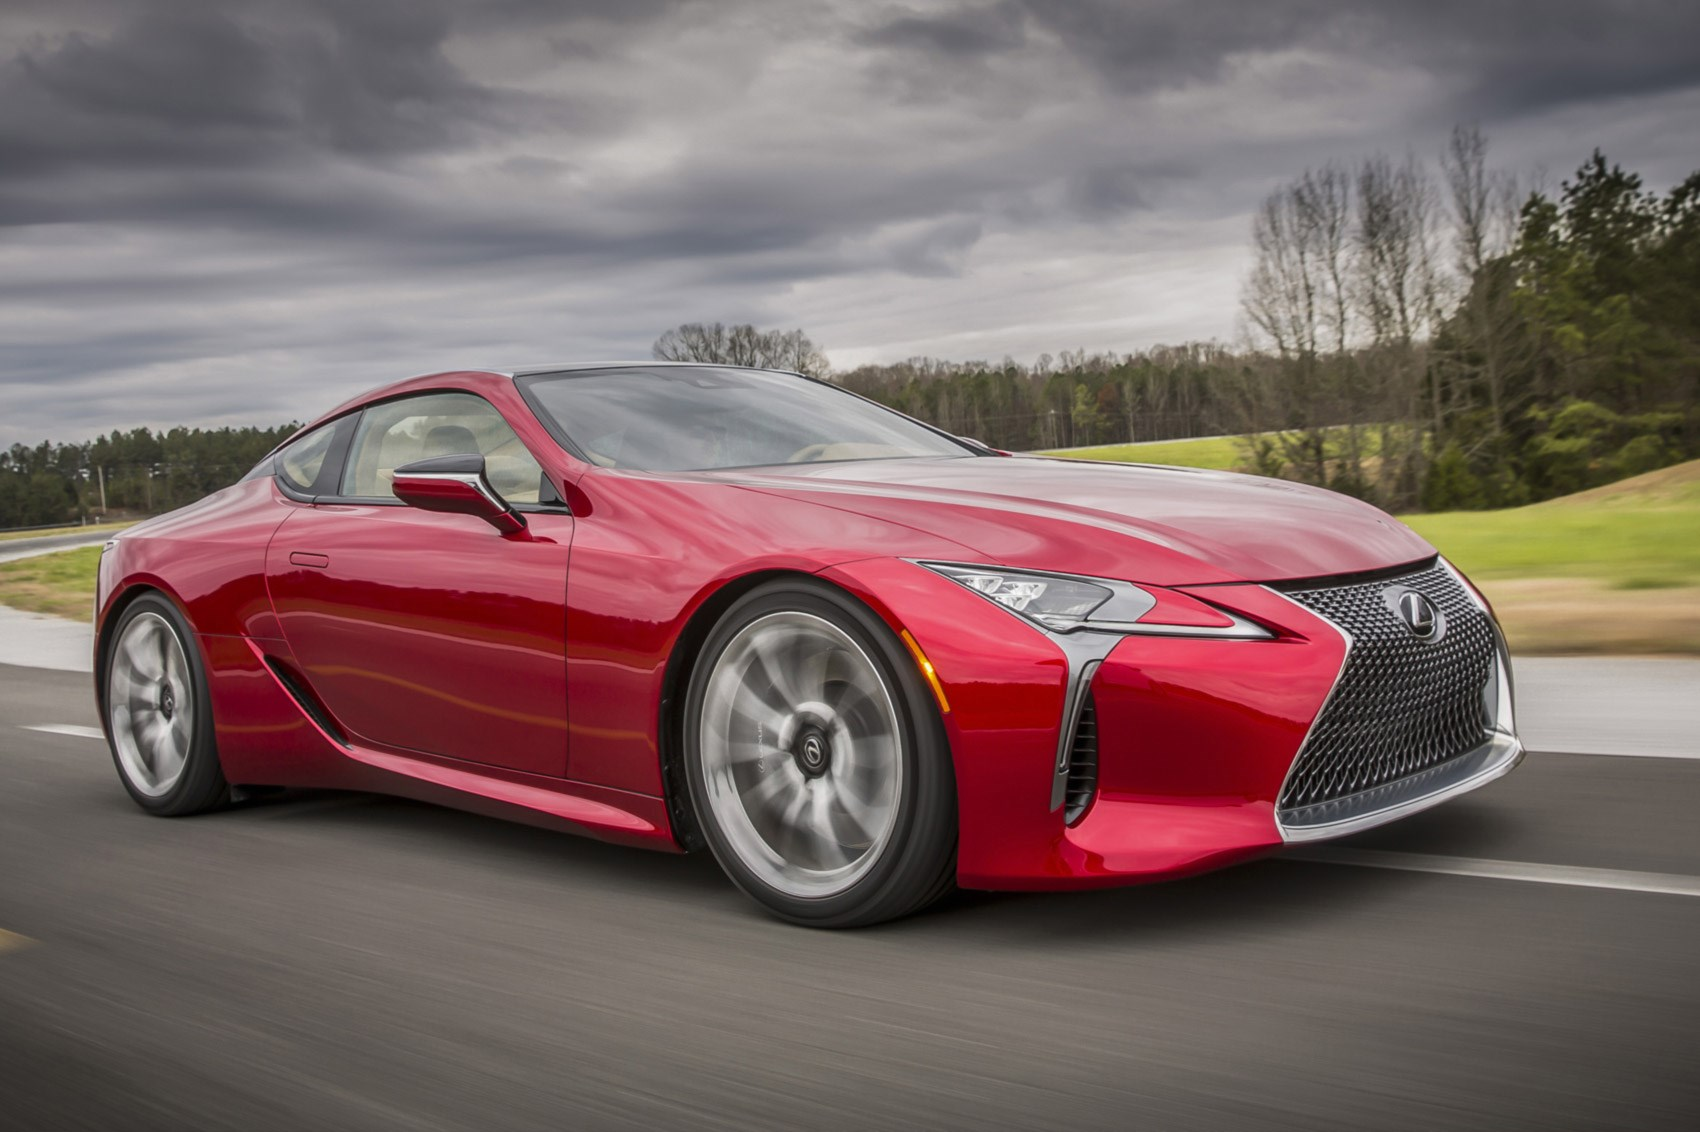 lexus rolls out the big guns new 467bhp lc 500 coupe revealed in detroit car magazine. Black Bedroom Furniture Sets. Home Design Ideas